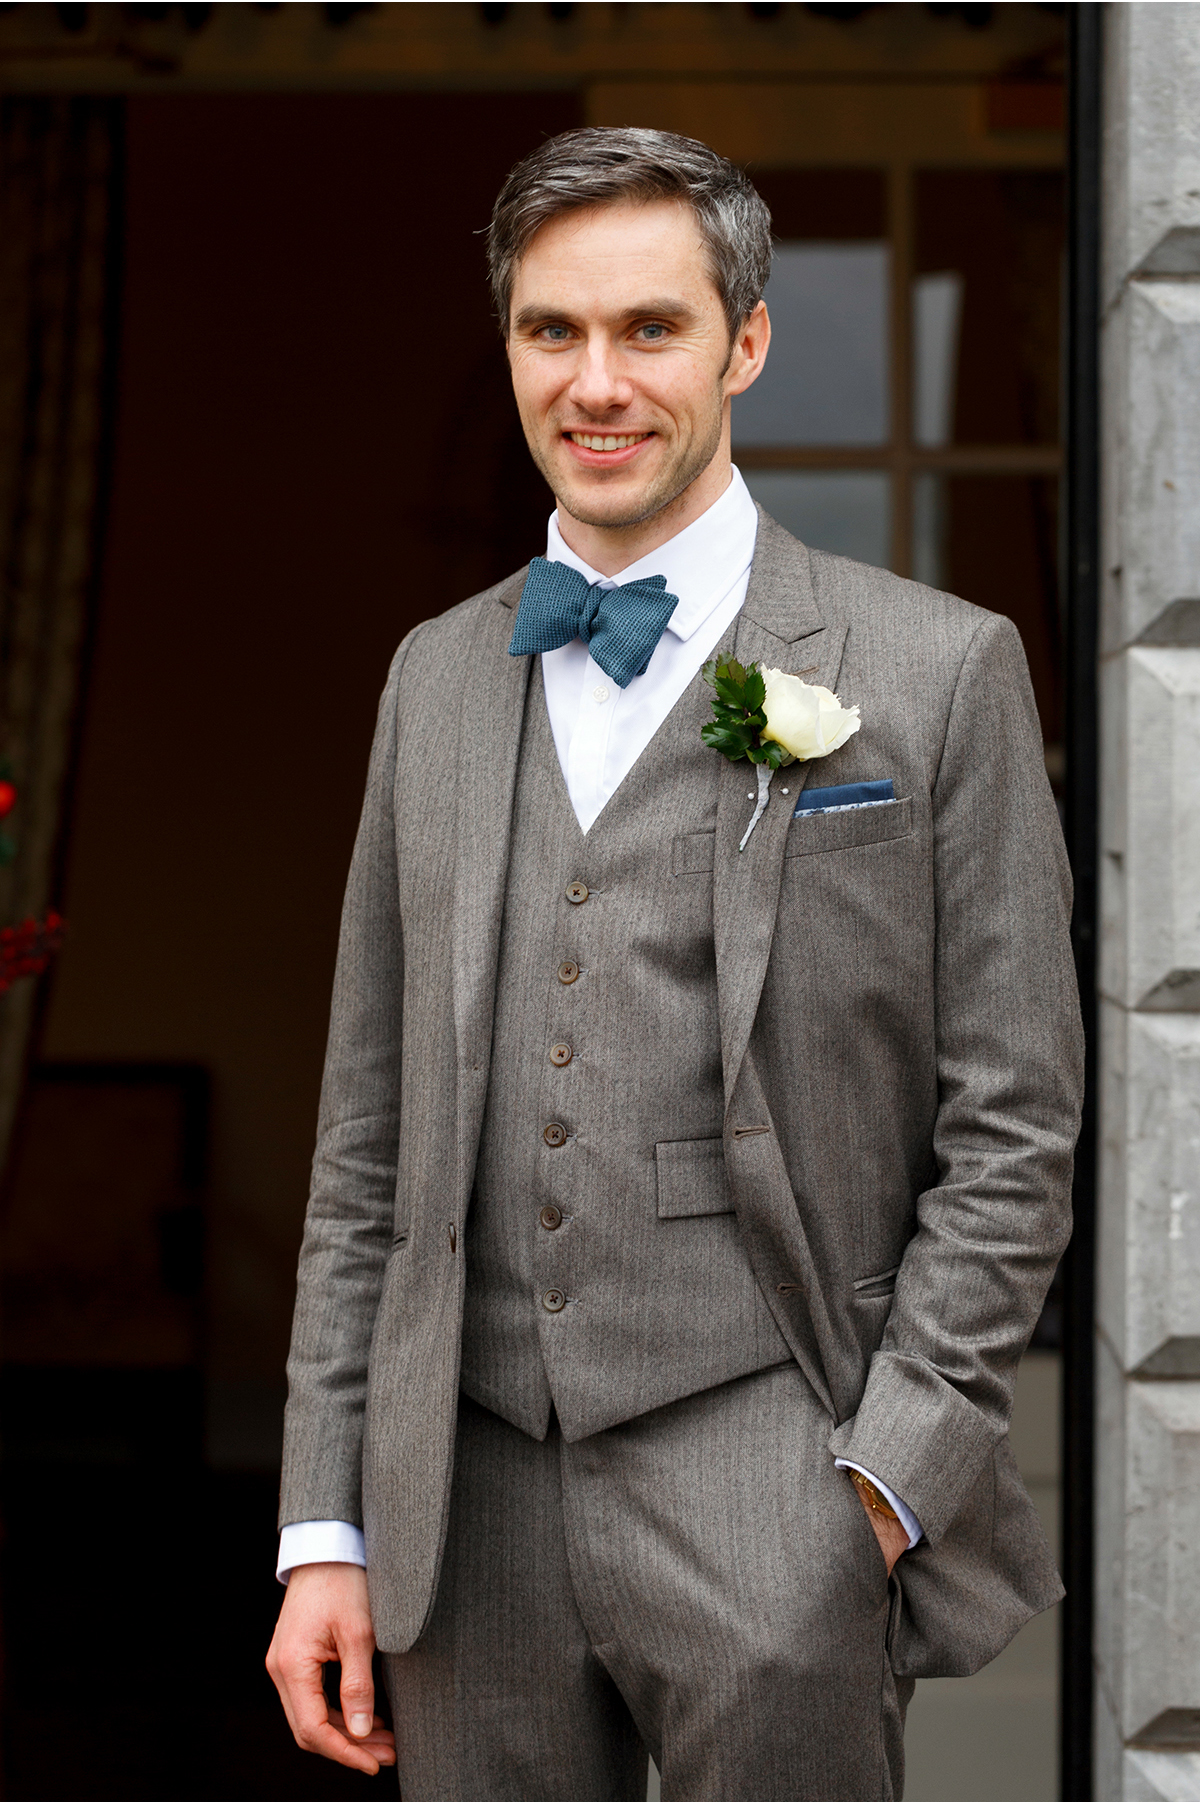 handsome groom in tweed and teal bowtie